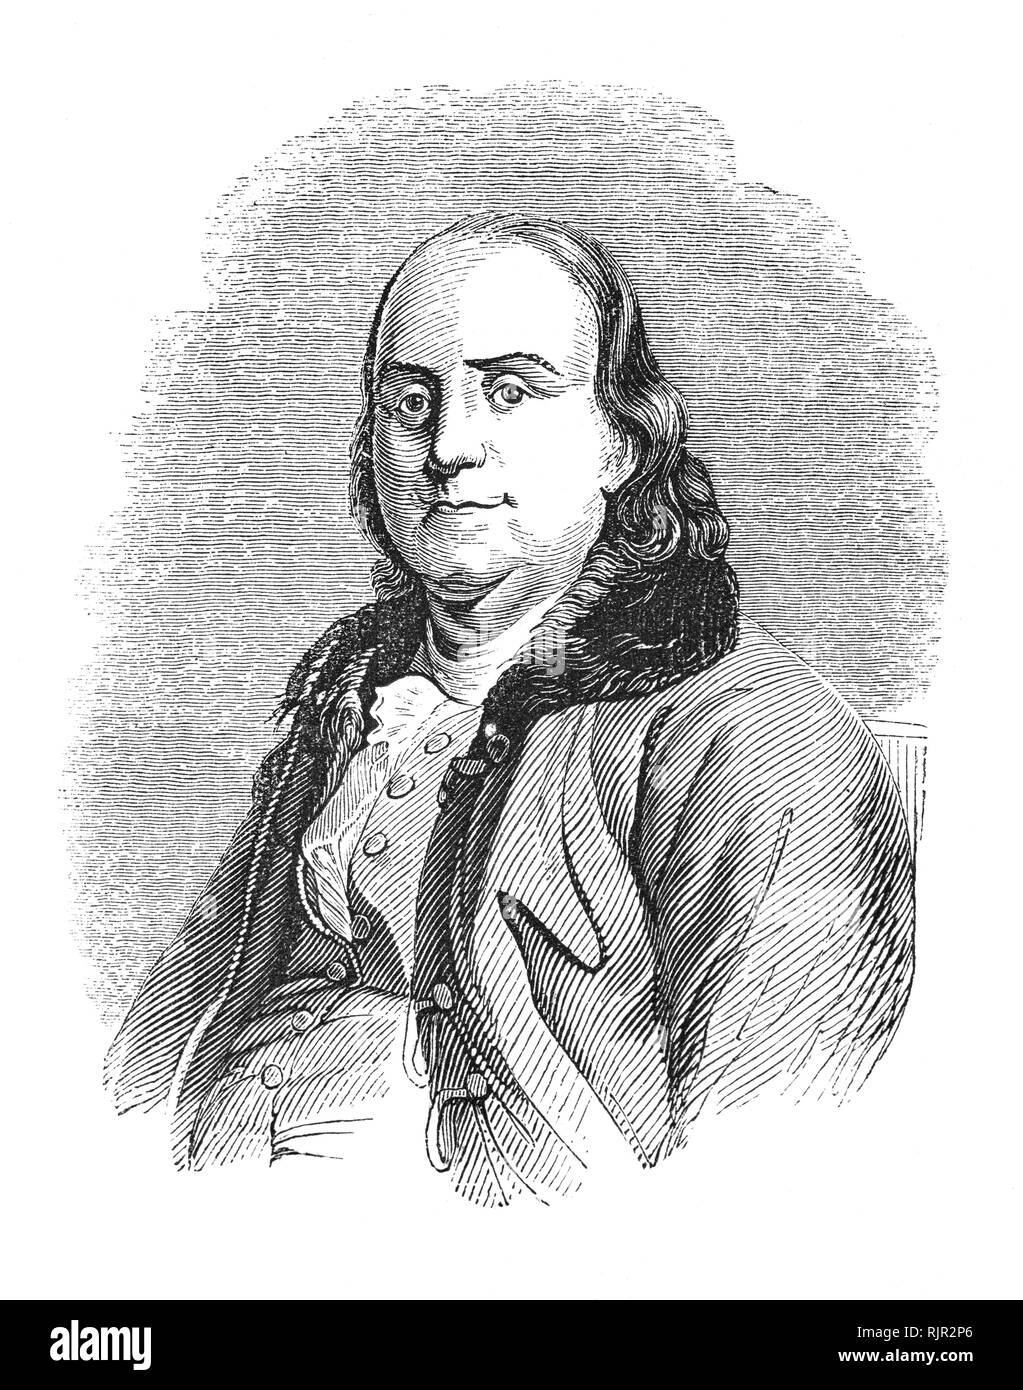 A portrait of Benjamin Franklin (1706-1790), an American polymath and one of the Founding Fathers of the United States. Franklin was a leading author, printer, political theorist, politician, freemason, postmaster, scientist, inventor, humorist, civic activist, statesman, and diplomat. As a scientist, he was a major figure in the American Enlightenment and the history of physics for his discoveries and theories regarding electricity. As an inventor, he is known for the lightning rod, bifocals, and the Franklin stove, among other inventions. - Stock Image